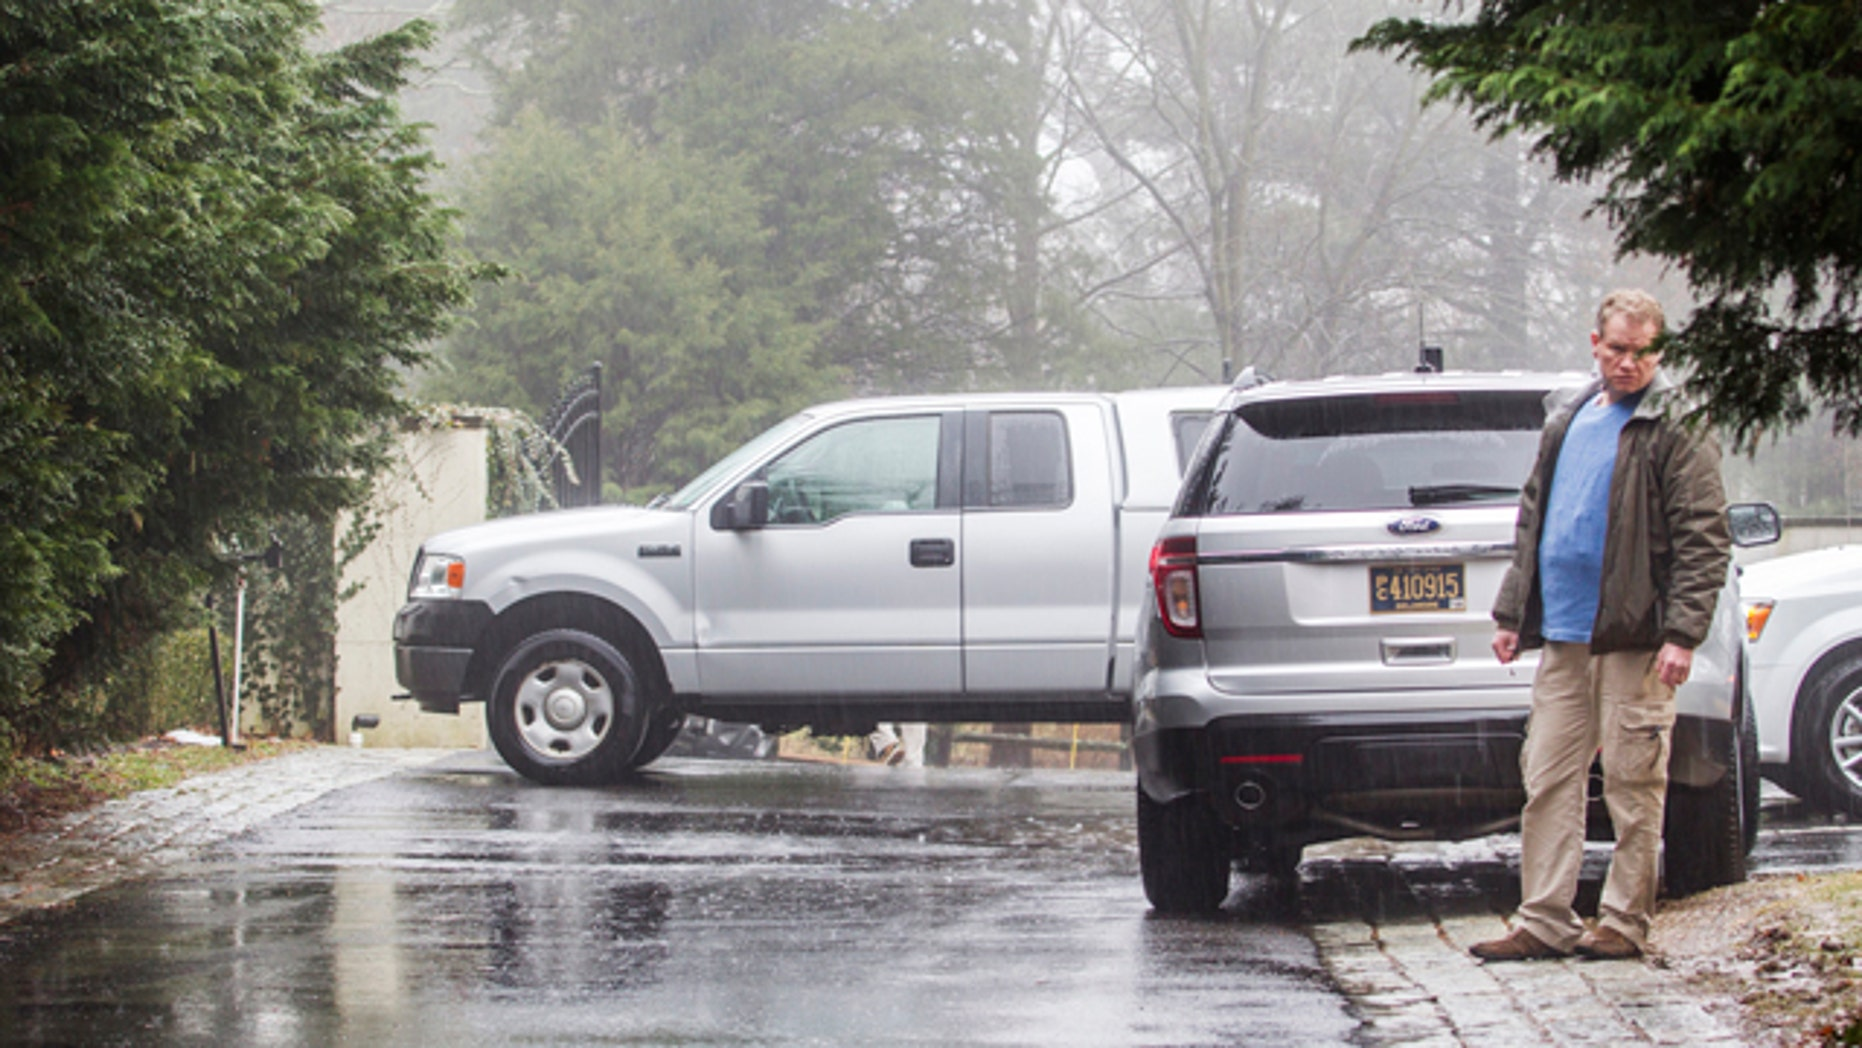 Jan. 18, 2015: A security official stands at the end of the driveway leading to Vice President Joe Biden's home in Greenville, Del. Multiple gunshots were fired from a vehicle near Biden's Delaware home Saturday night, the U.S. Secret Service said Sunday. (AP Photo/The News Journal, Kyle Grantham)